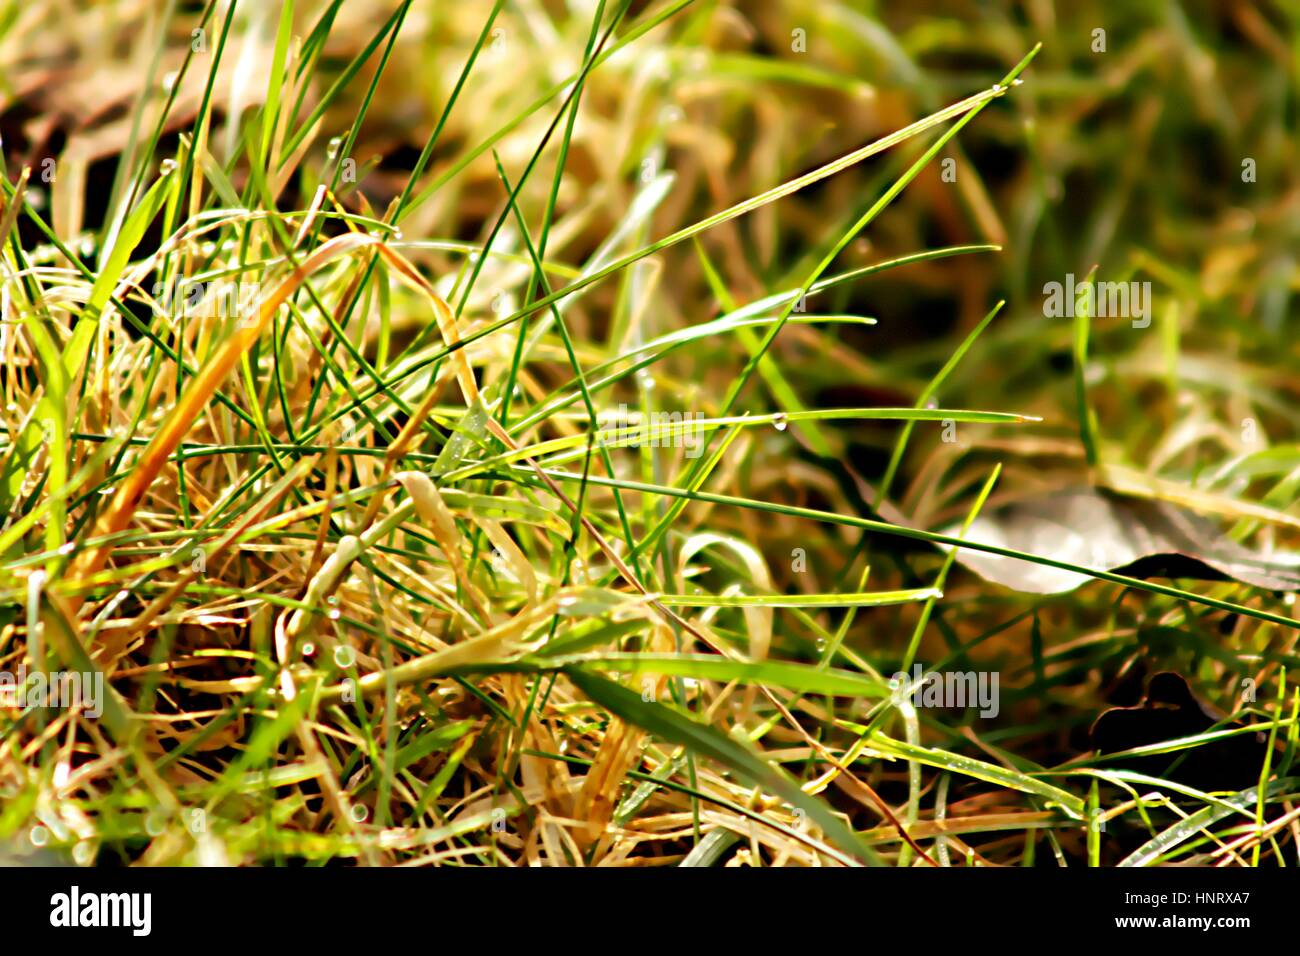 Close up of green grass in rainy weather - Stock Image